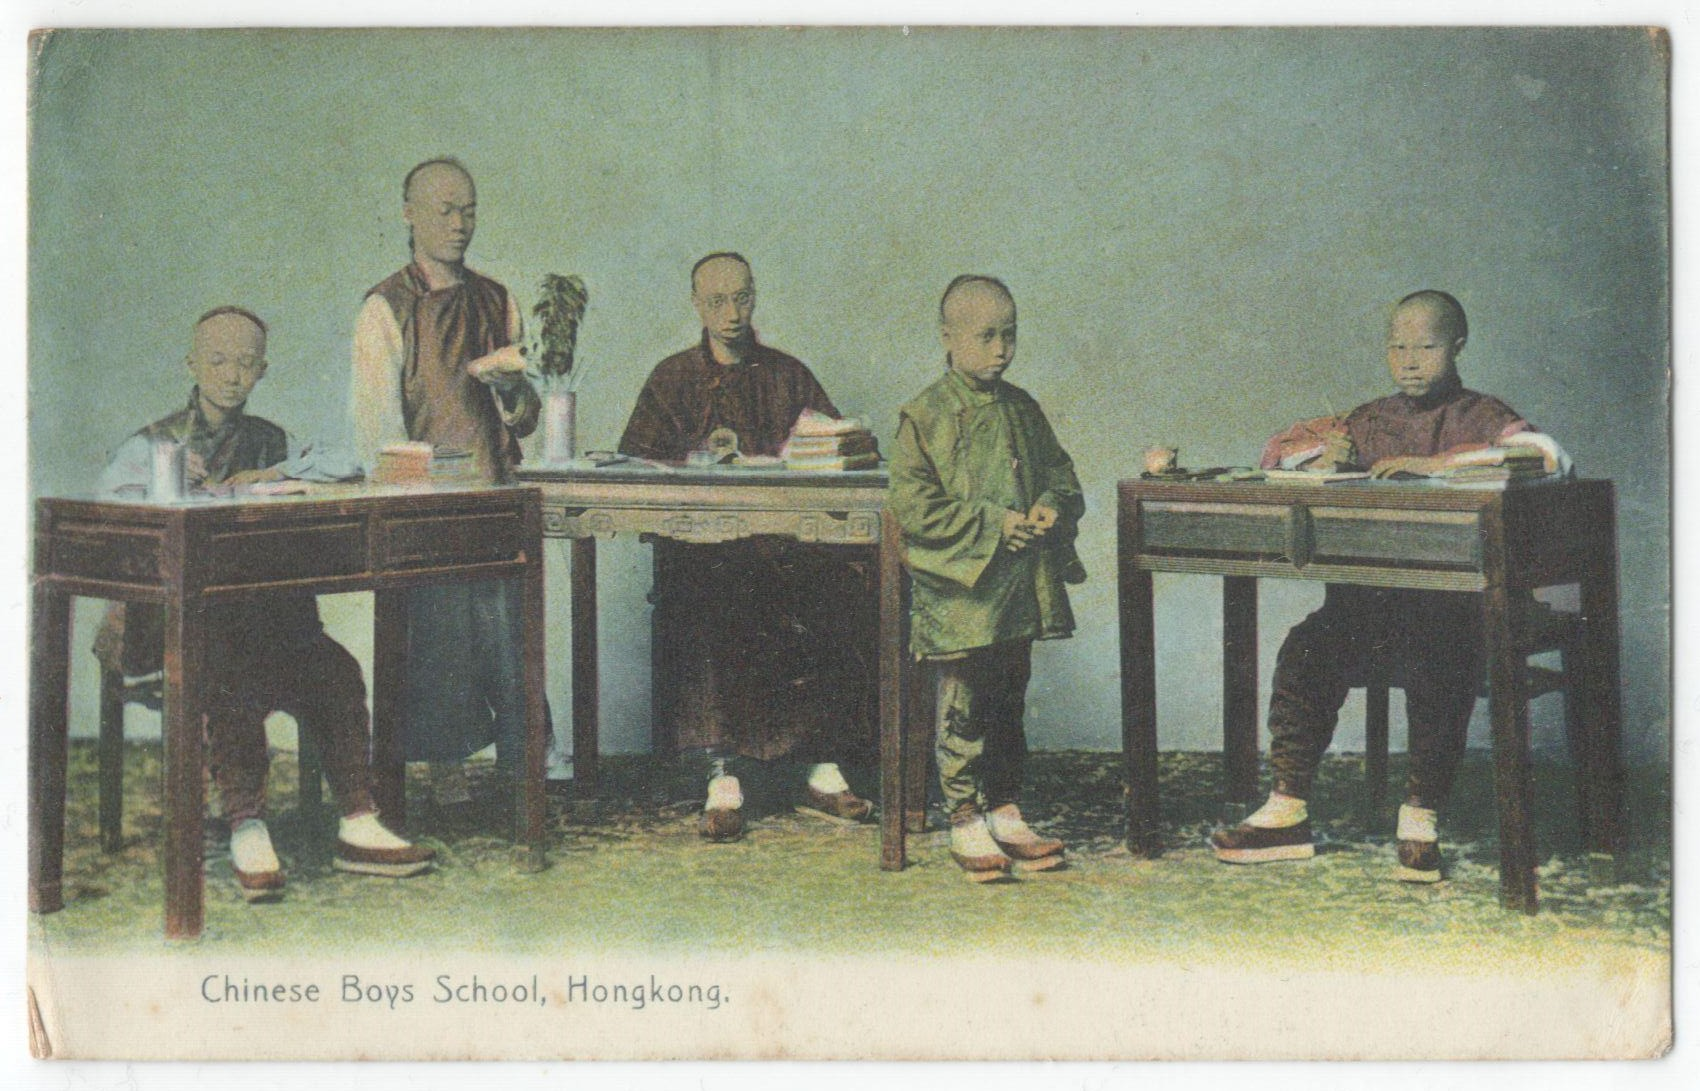 Lot 3 - CHINESE BOYS SCHOOL HONGKONG - POSTED POSTCARD TEMPORARY P.O. CHOWRASTA 1908